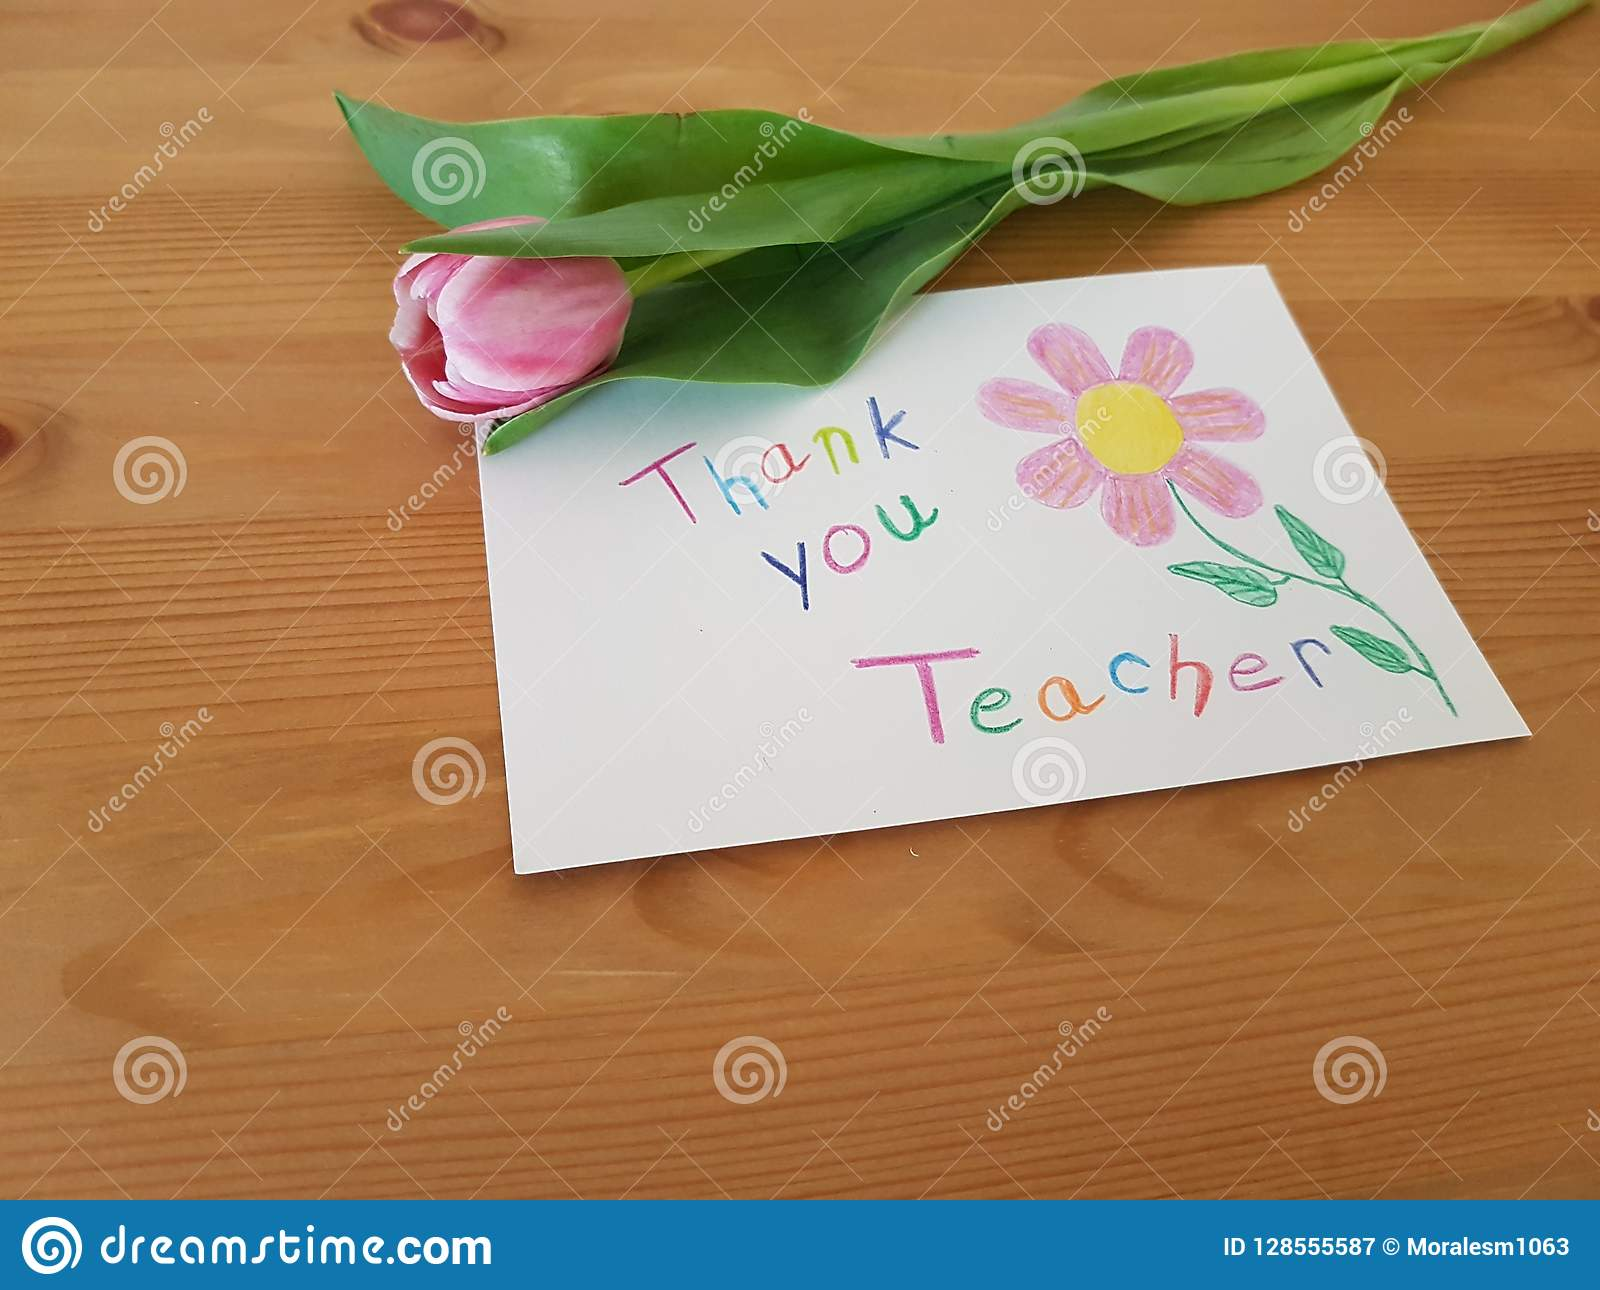 Thank You Teacher, Thank You Note With Tulip Stock Image - Image of